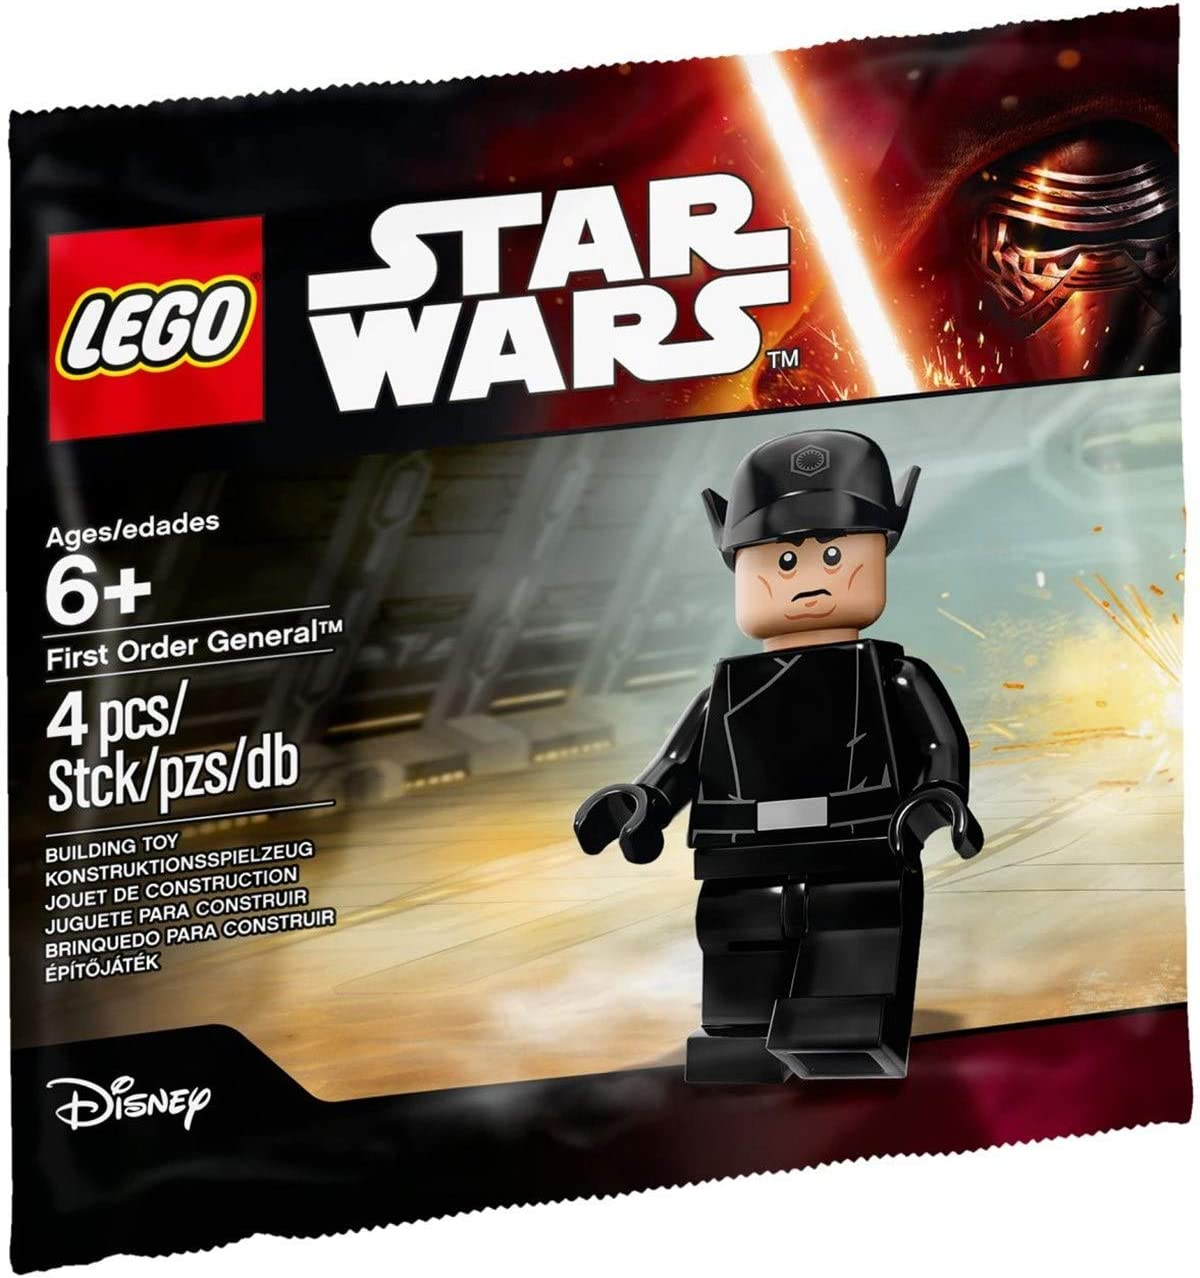 LEGO Star Wars The Force Awakens First Order General 5004406